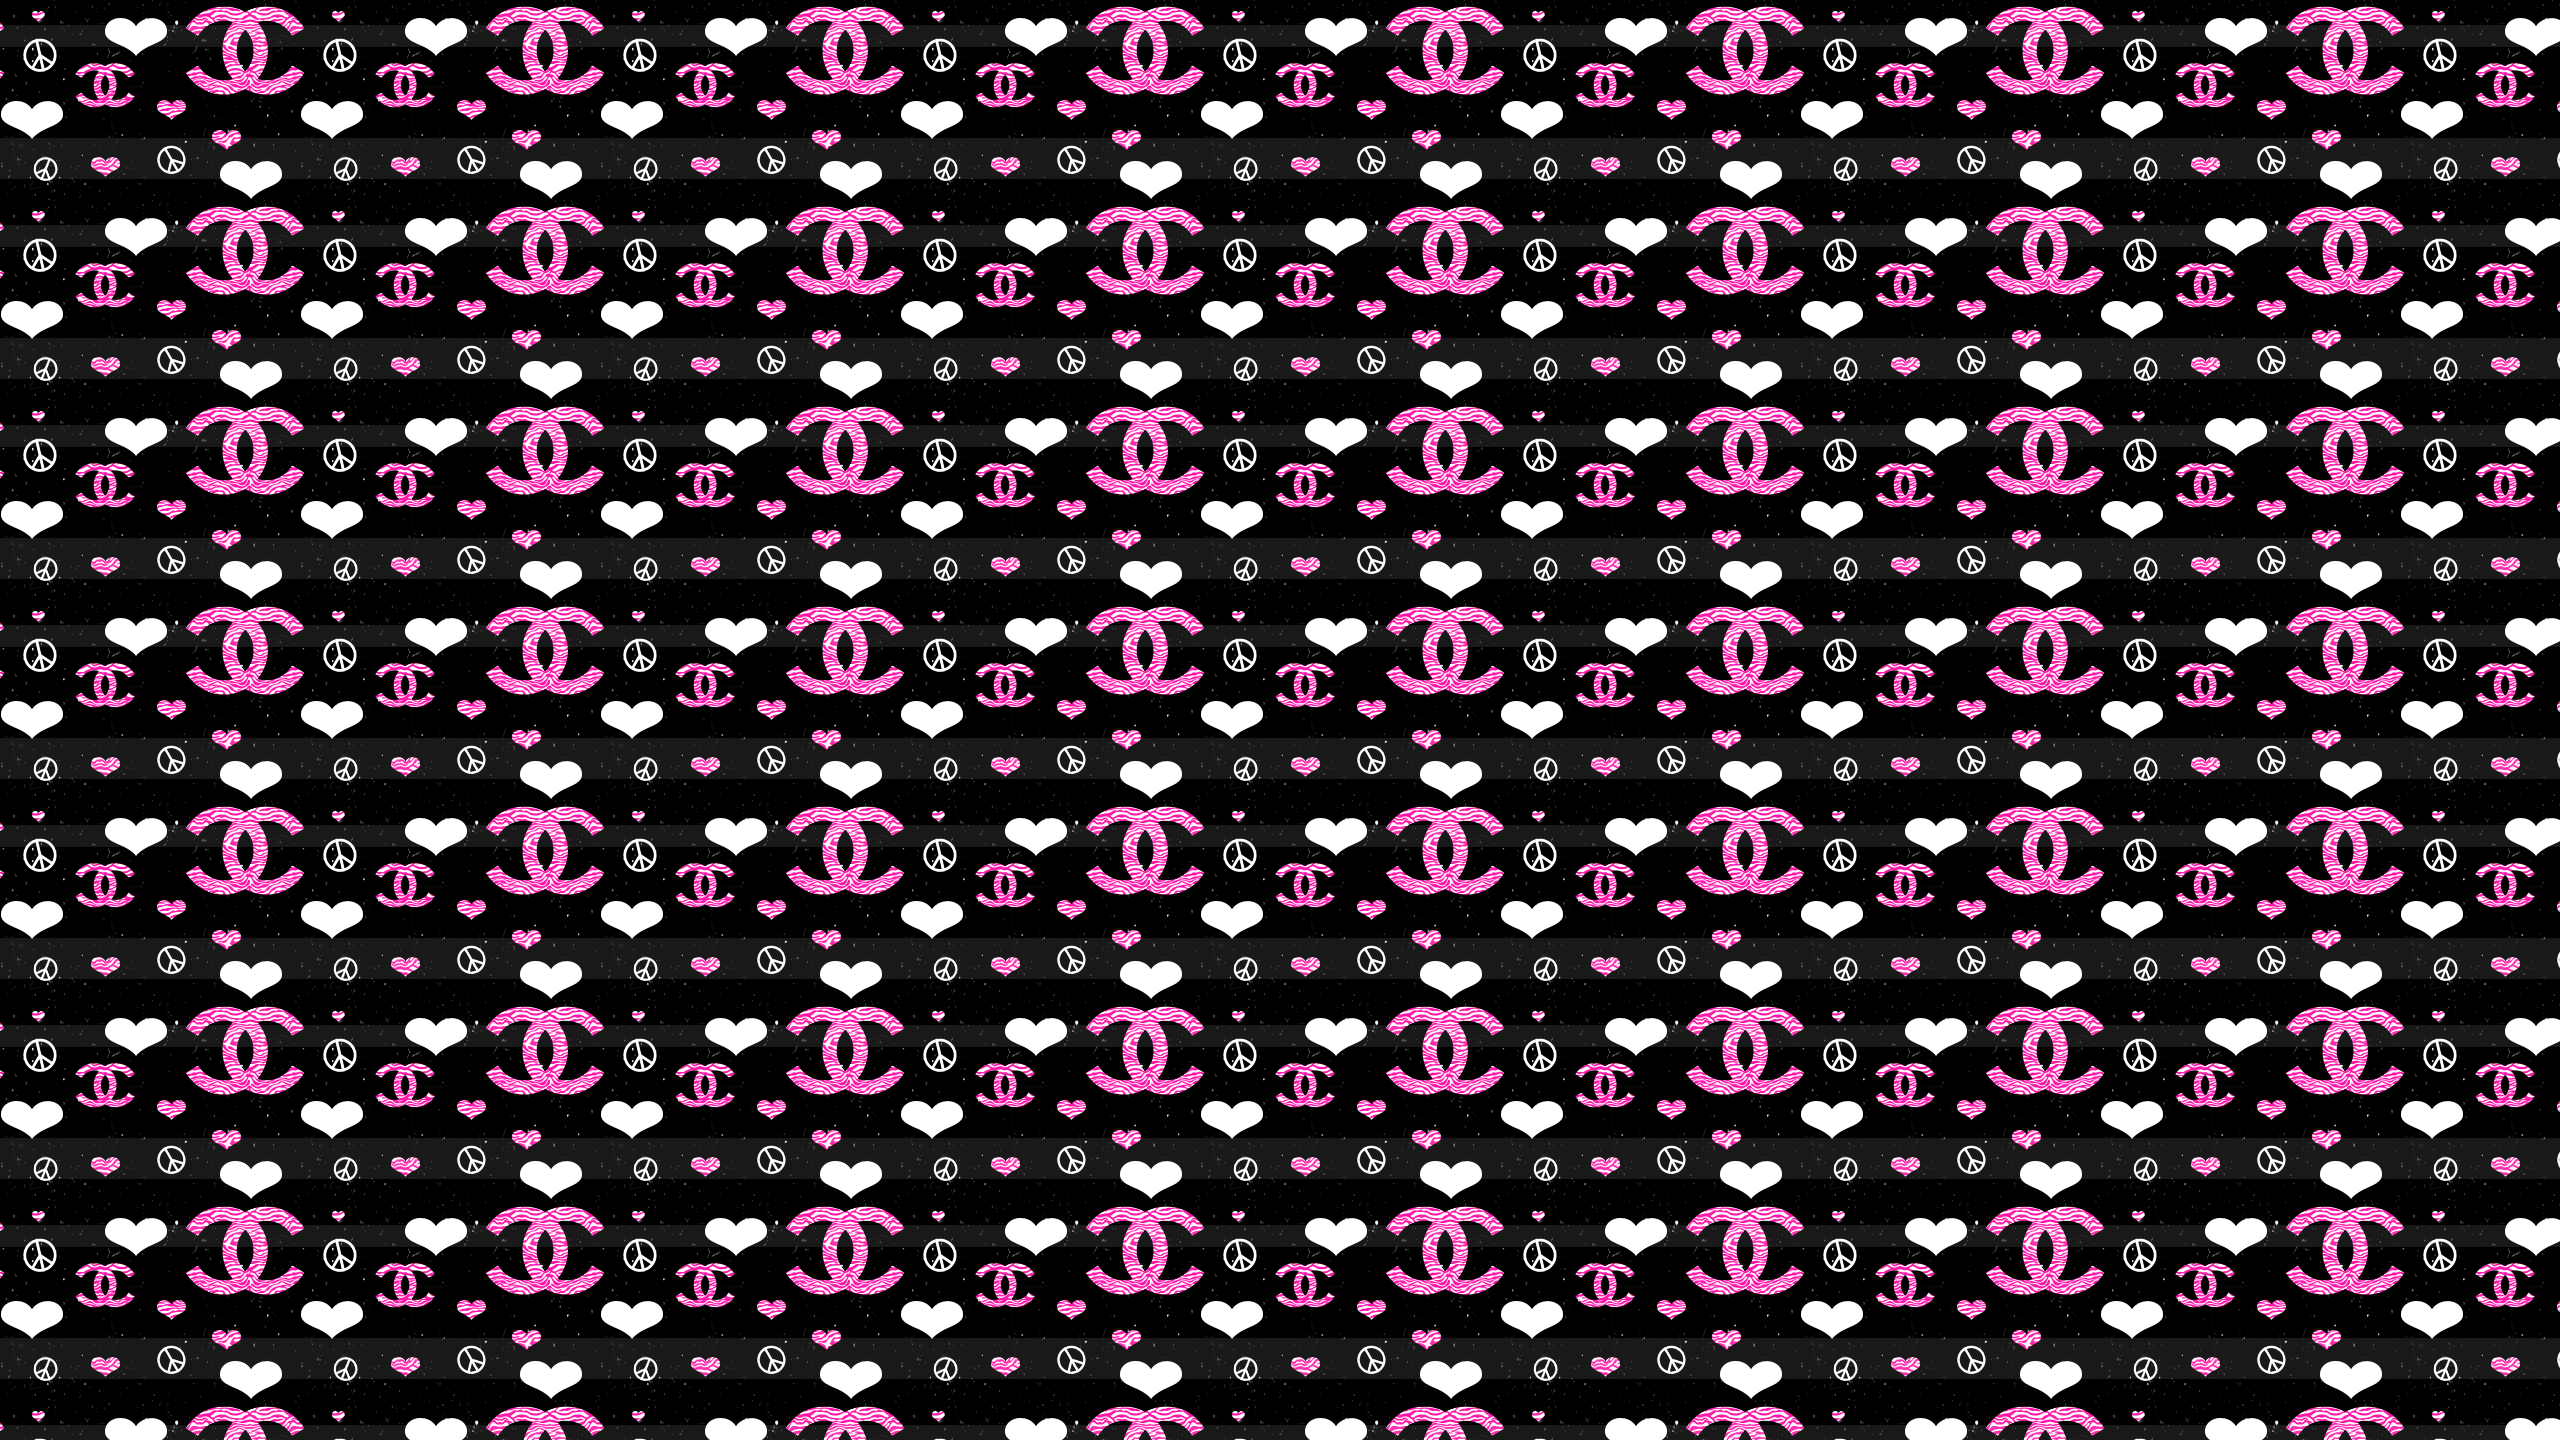 Chanel Desktop Wallpaper 2560x1440